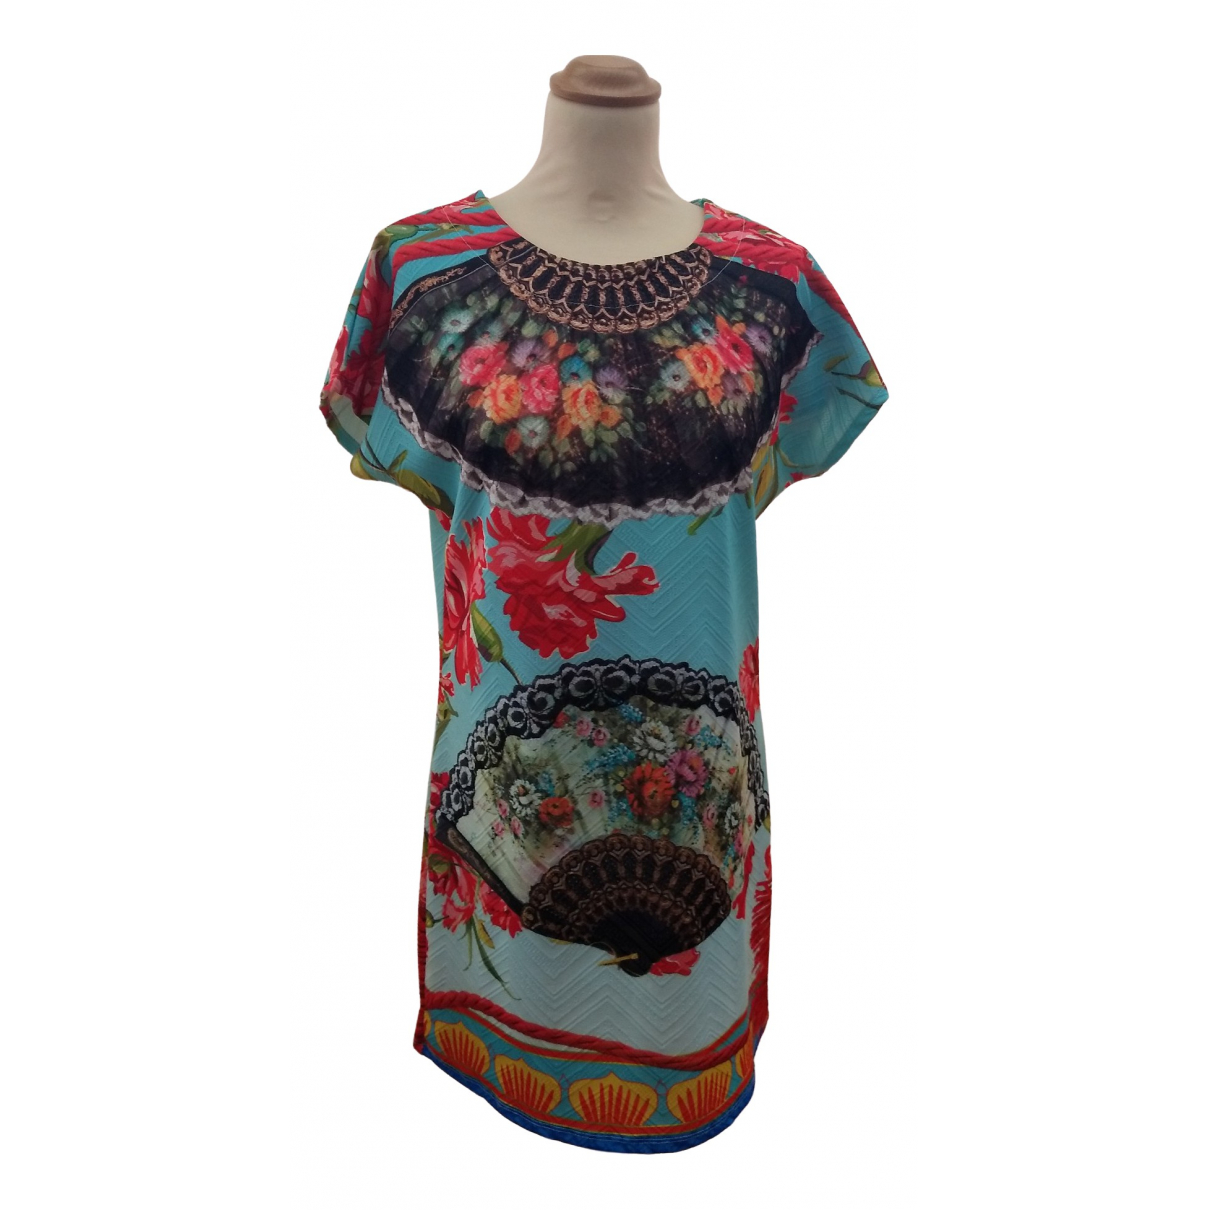 D&g \N Multicolour Cotton dress for Women M International